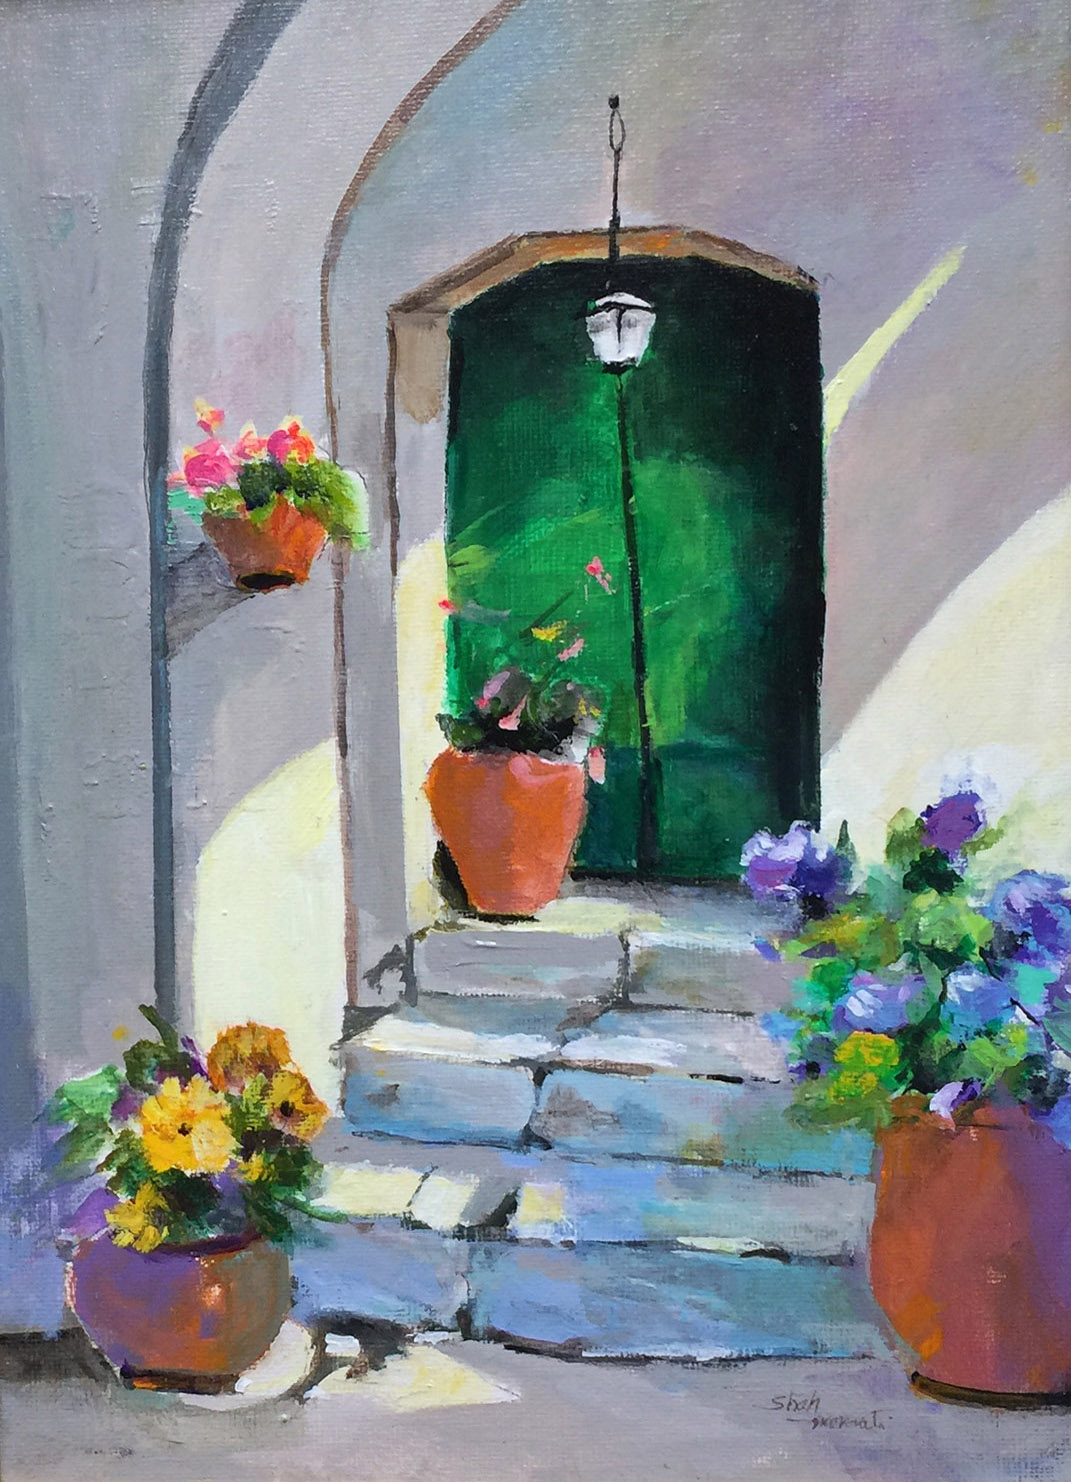 Green Door - Shah Morovati